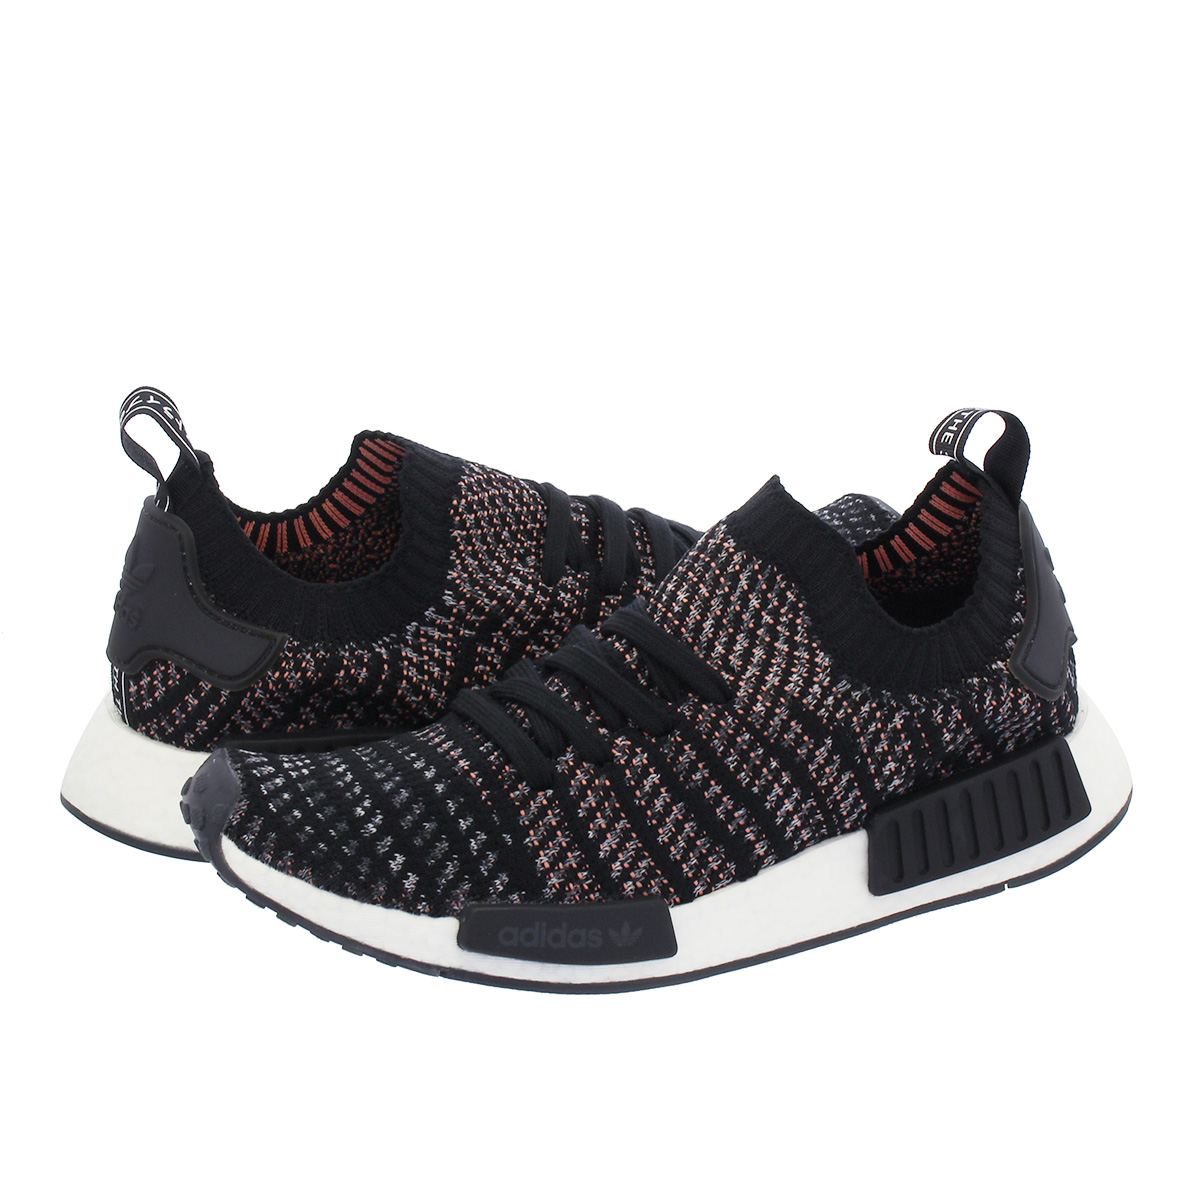 innovative design d40ad 6cf3b adidas NMD_R1 STLT PK Adidas NMD R1 STLT PK CORE BLACK/GREY FIVE/GREY TWO  b37636